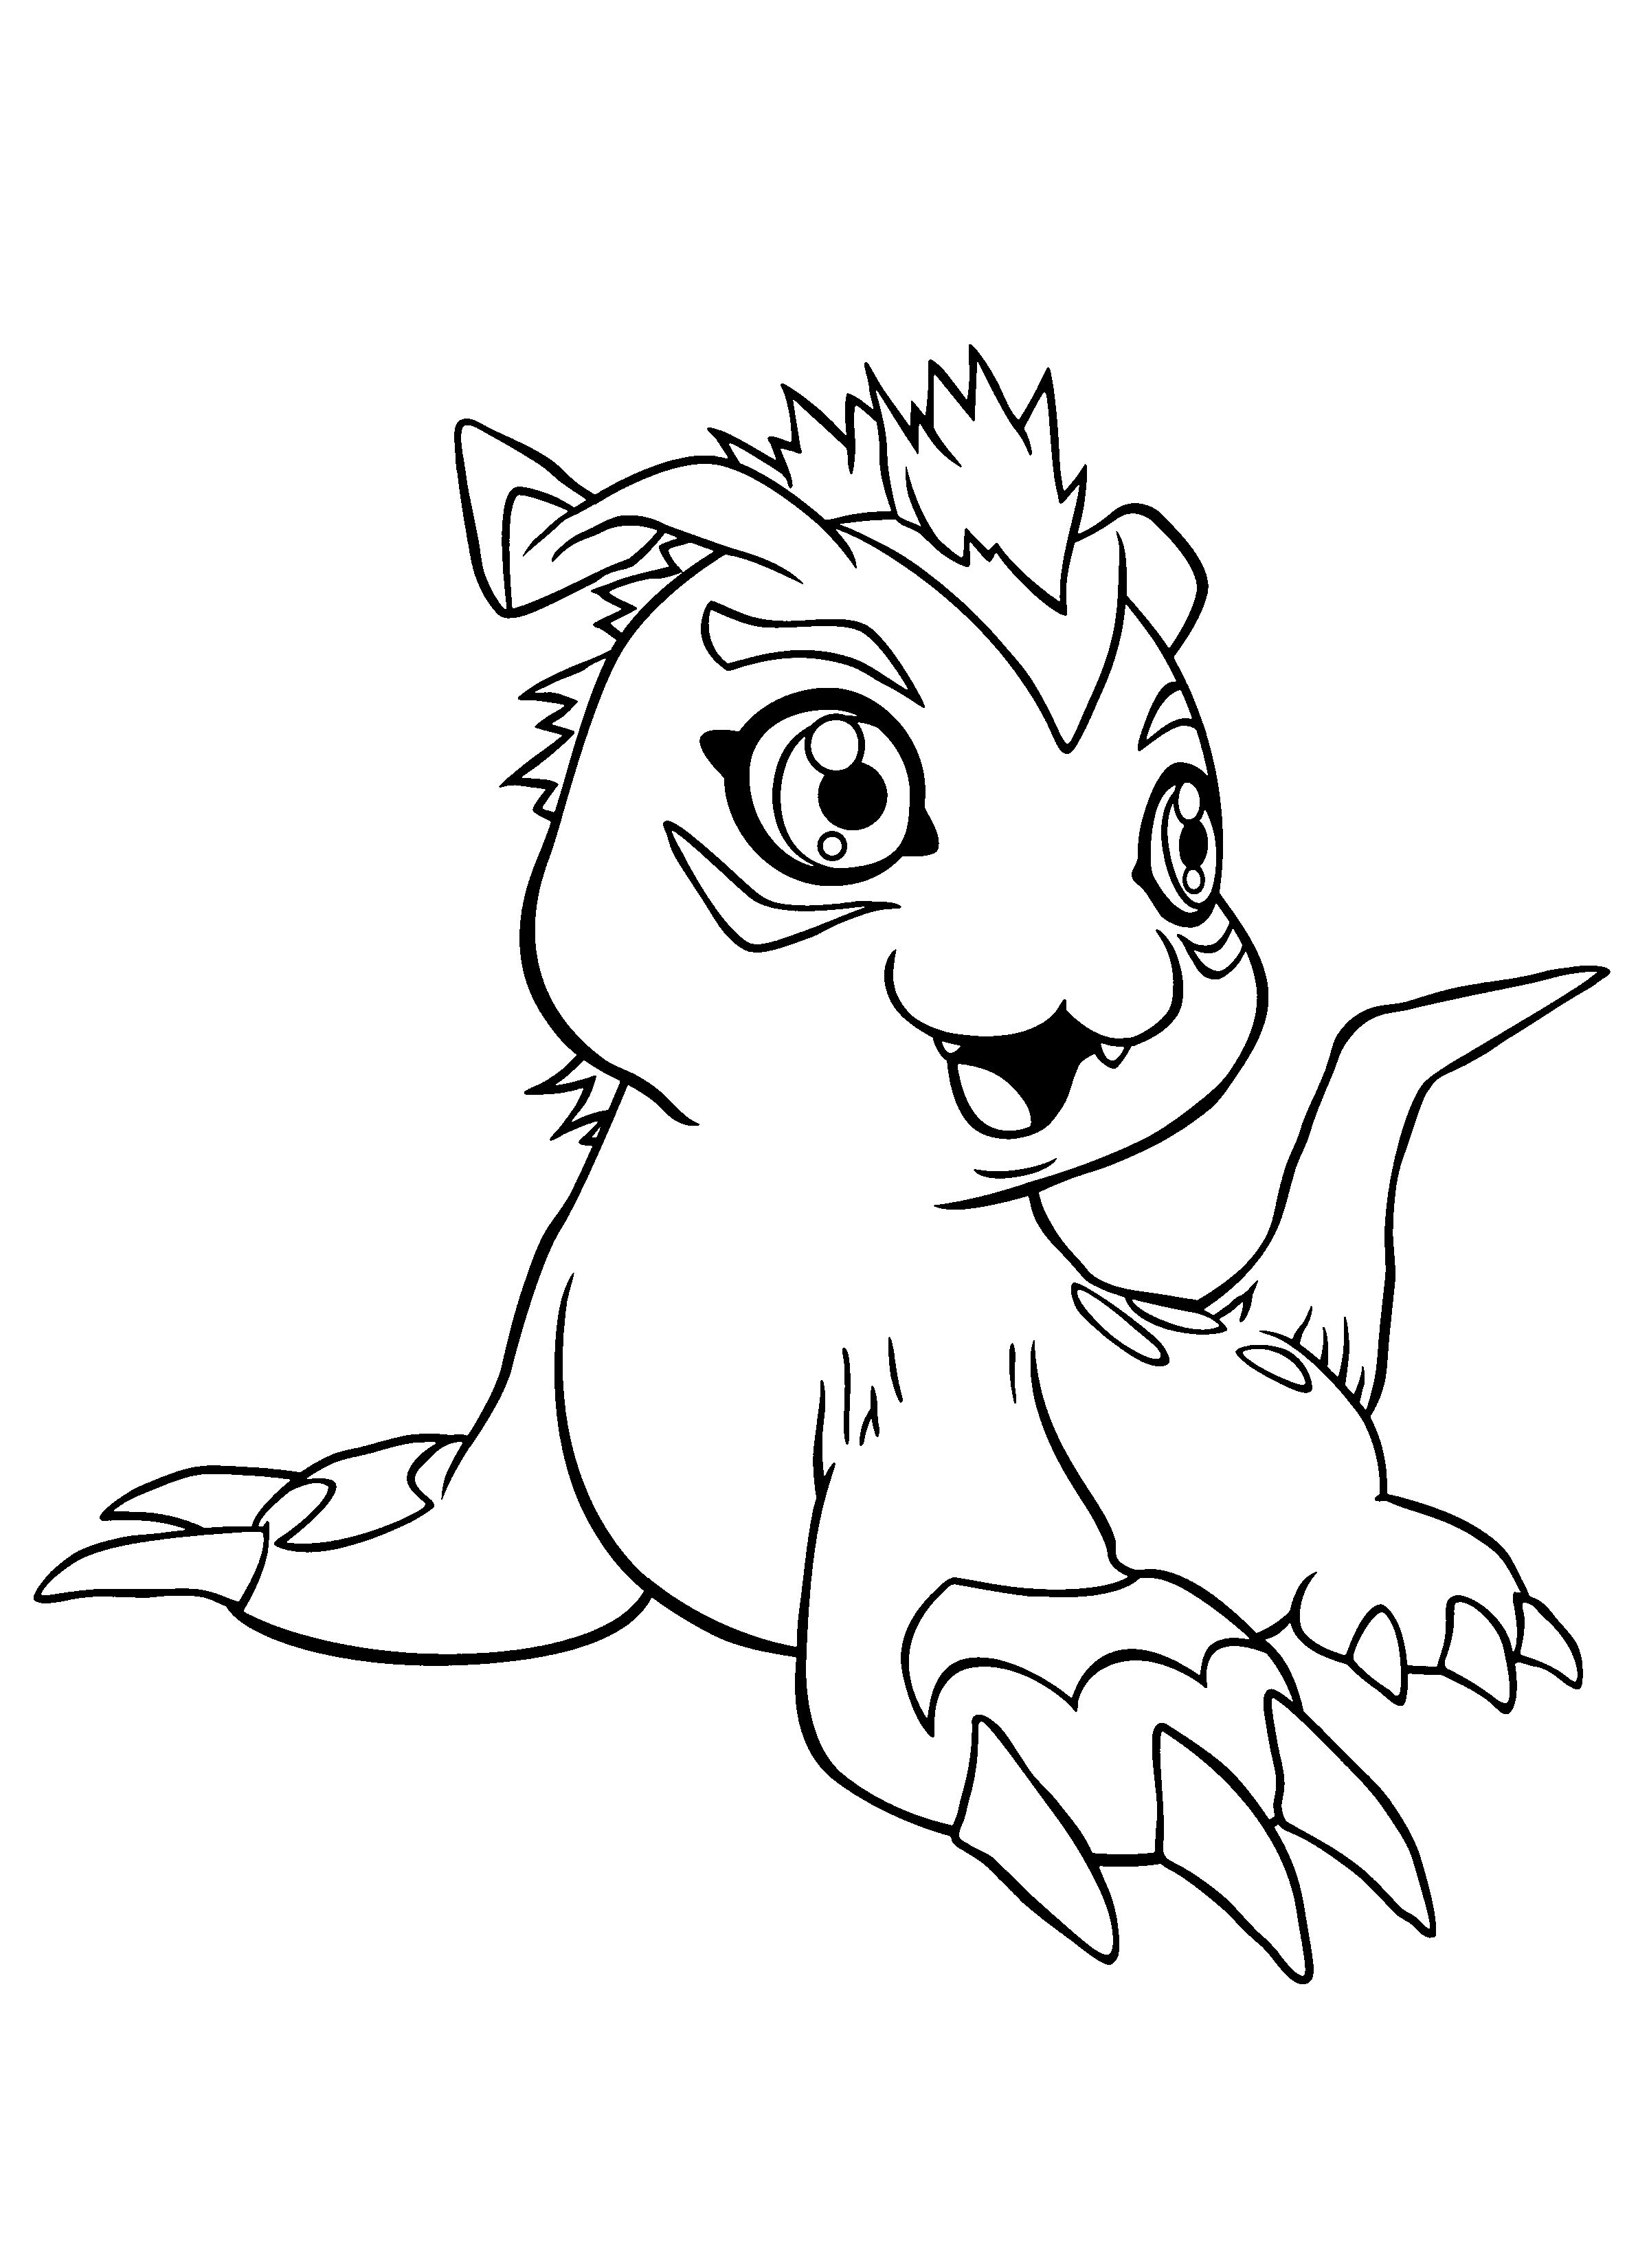 digimon coloring page,printable,coloring pages